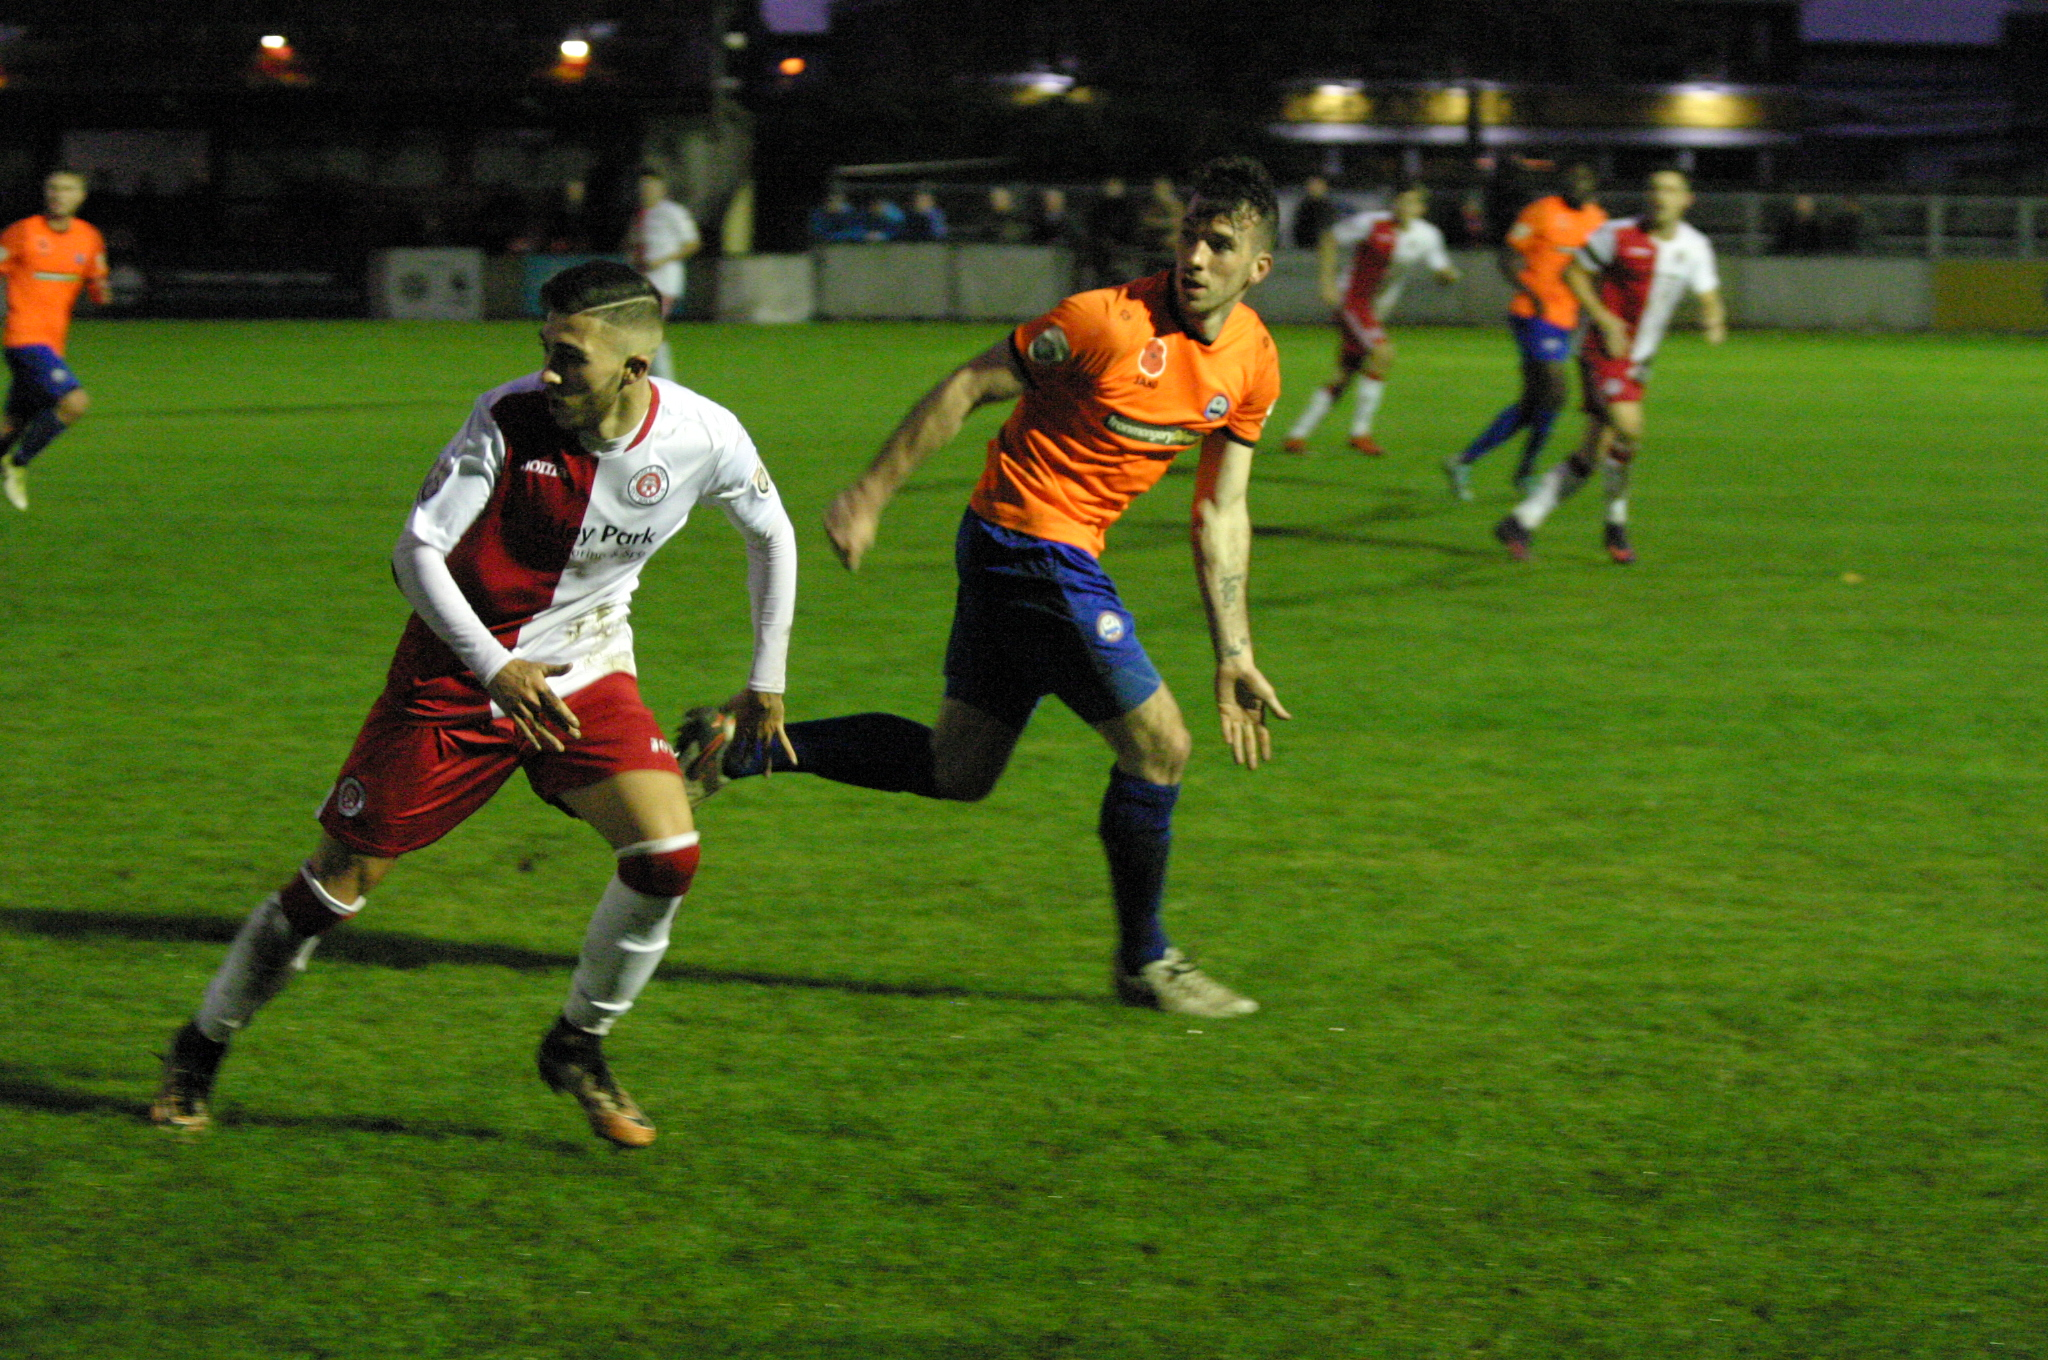 Joe Ellul impressed on his debut for Braintree Town at Poole Town. Picture: Jon Weaver